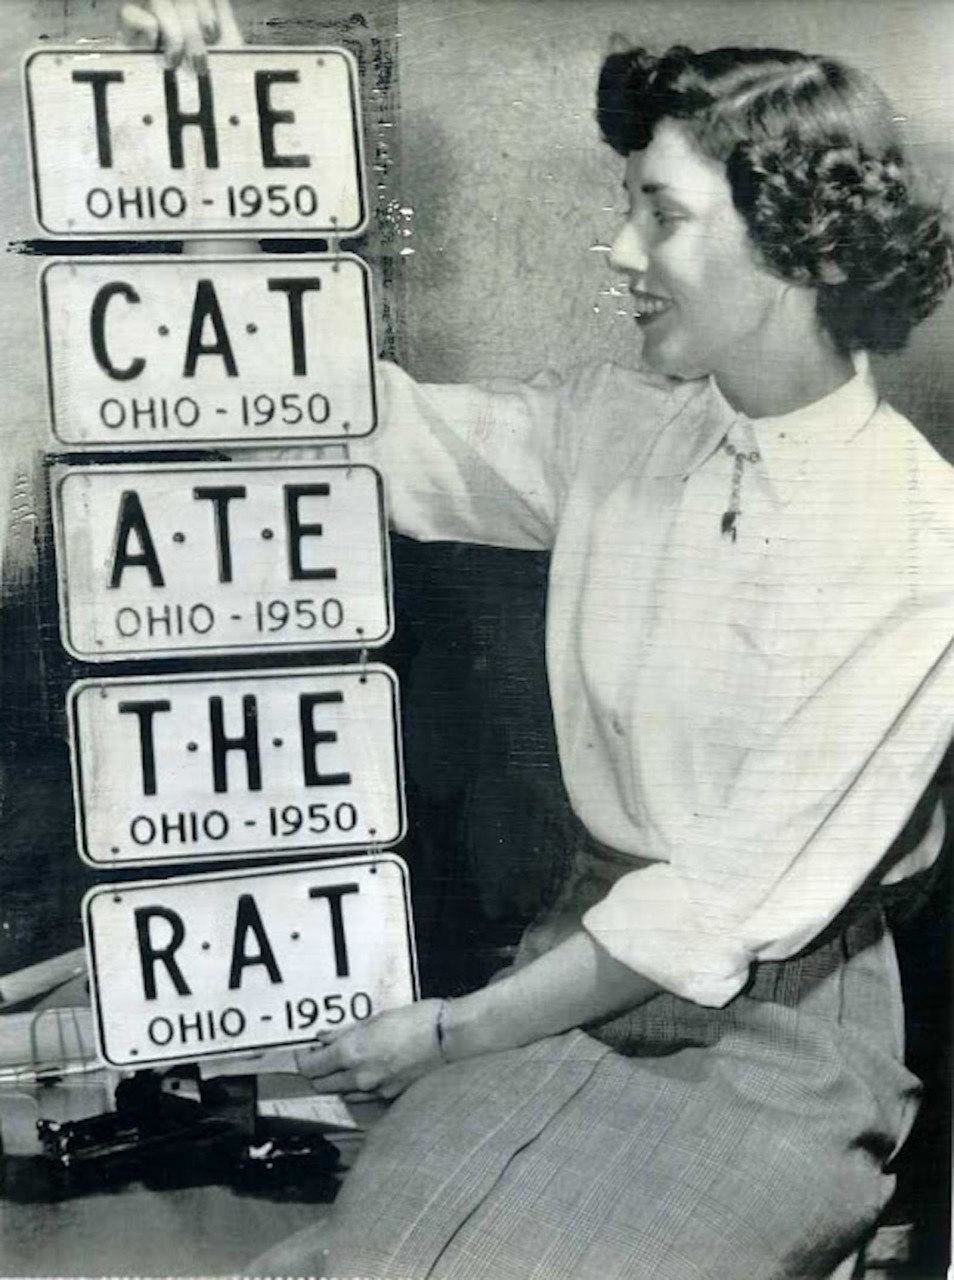 THE-CAT-ATE-THE-RAT-OHIO-1950